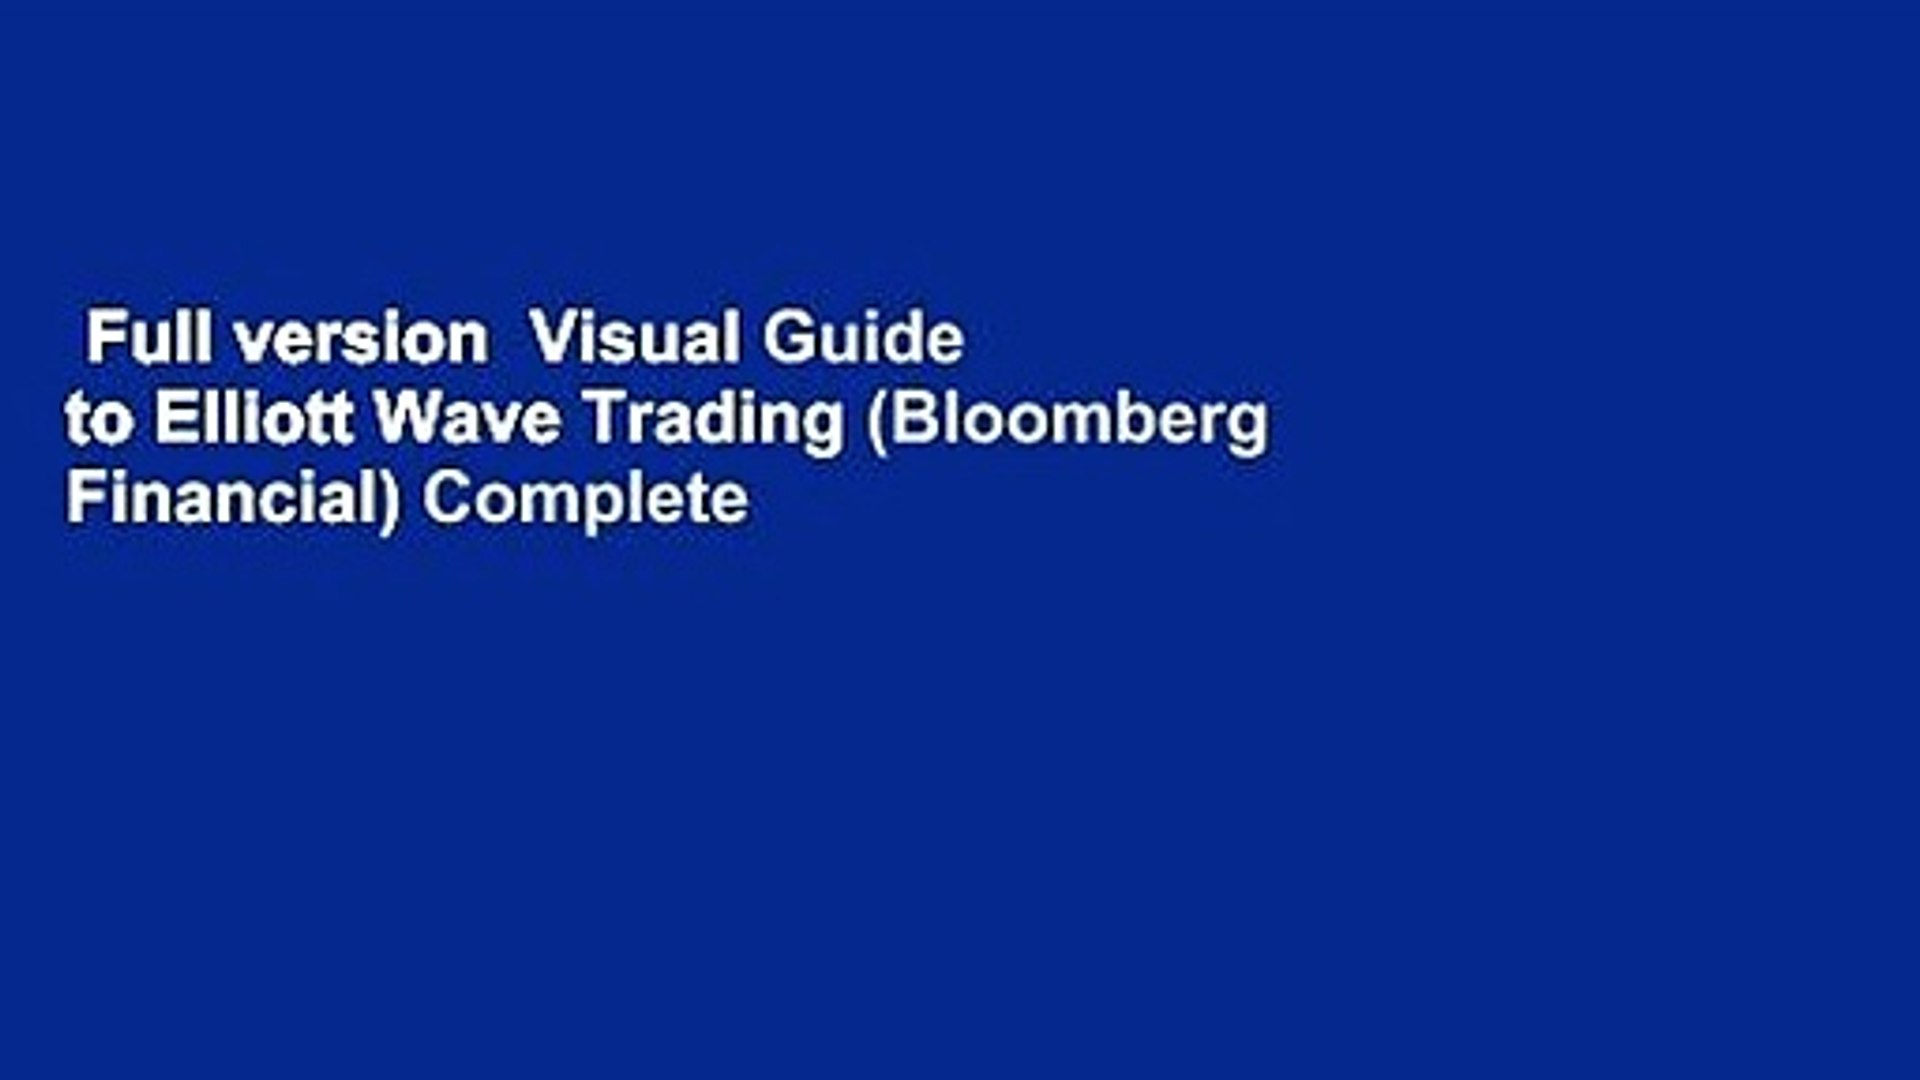 Full version Visual Guide to Elliott Wave Trading (Bloomberg Financial)  Complete